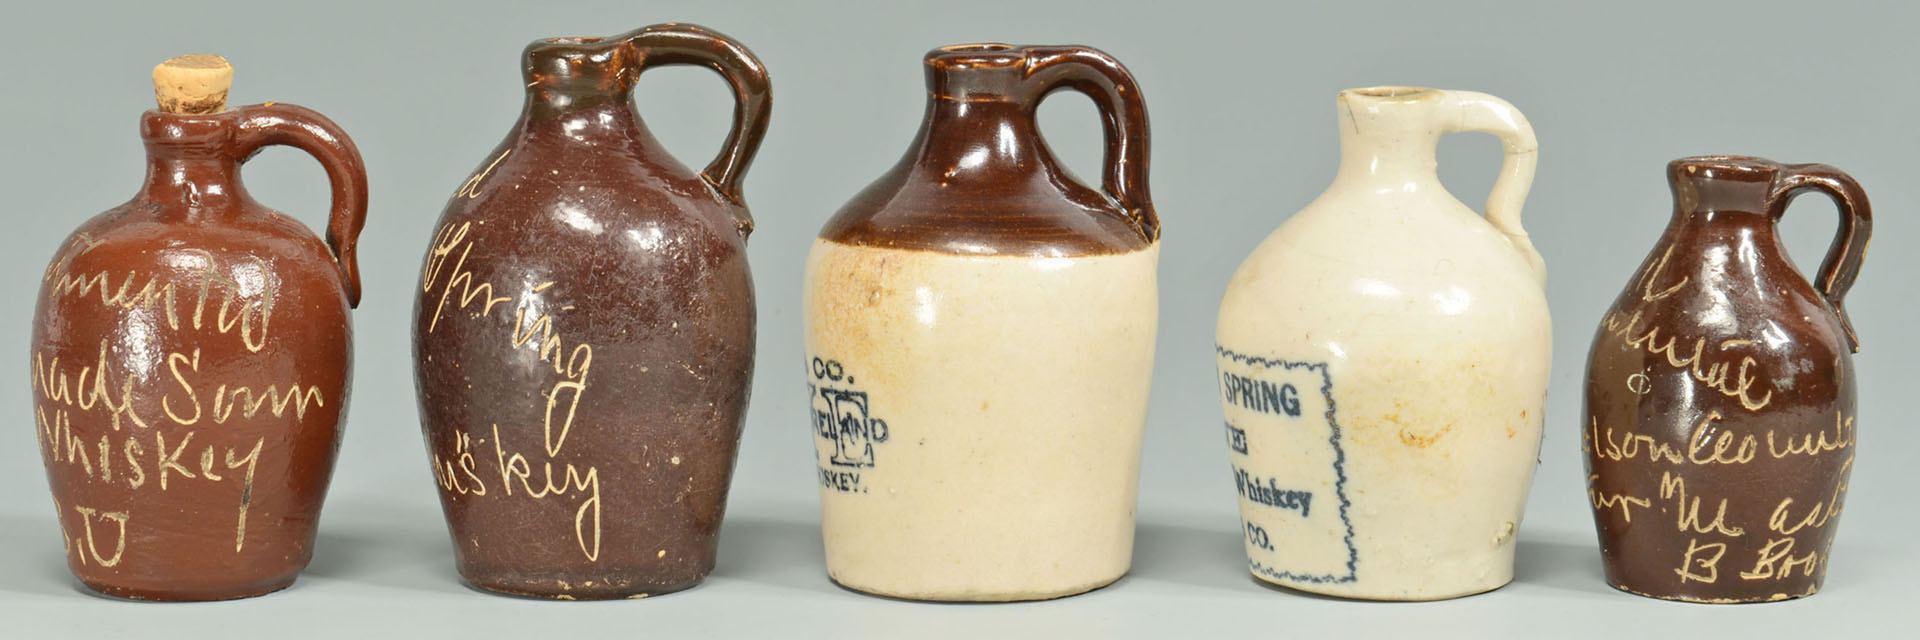 Lot 121: 5 Miniature Kentucky Whiskey Jugs inc. Old Contine